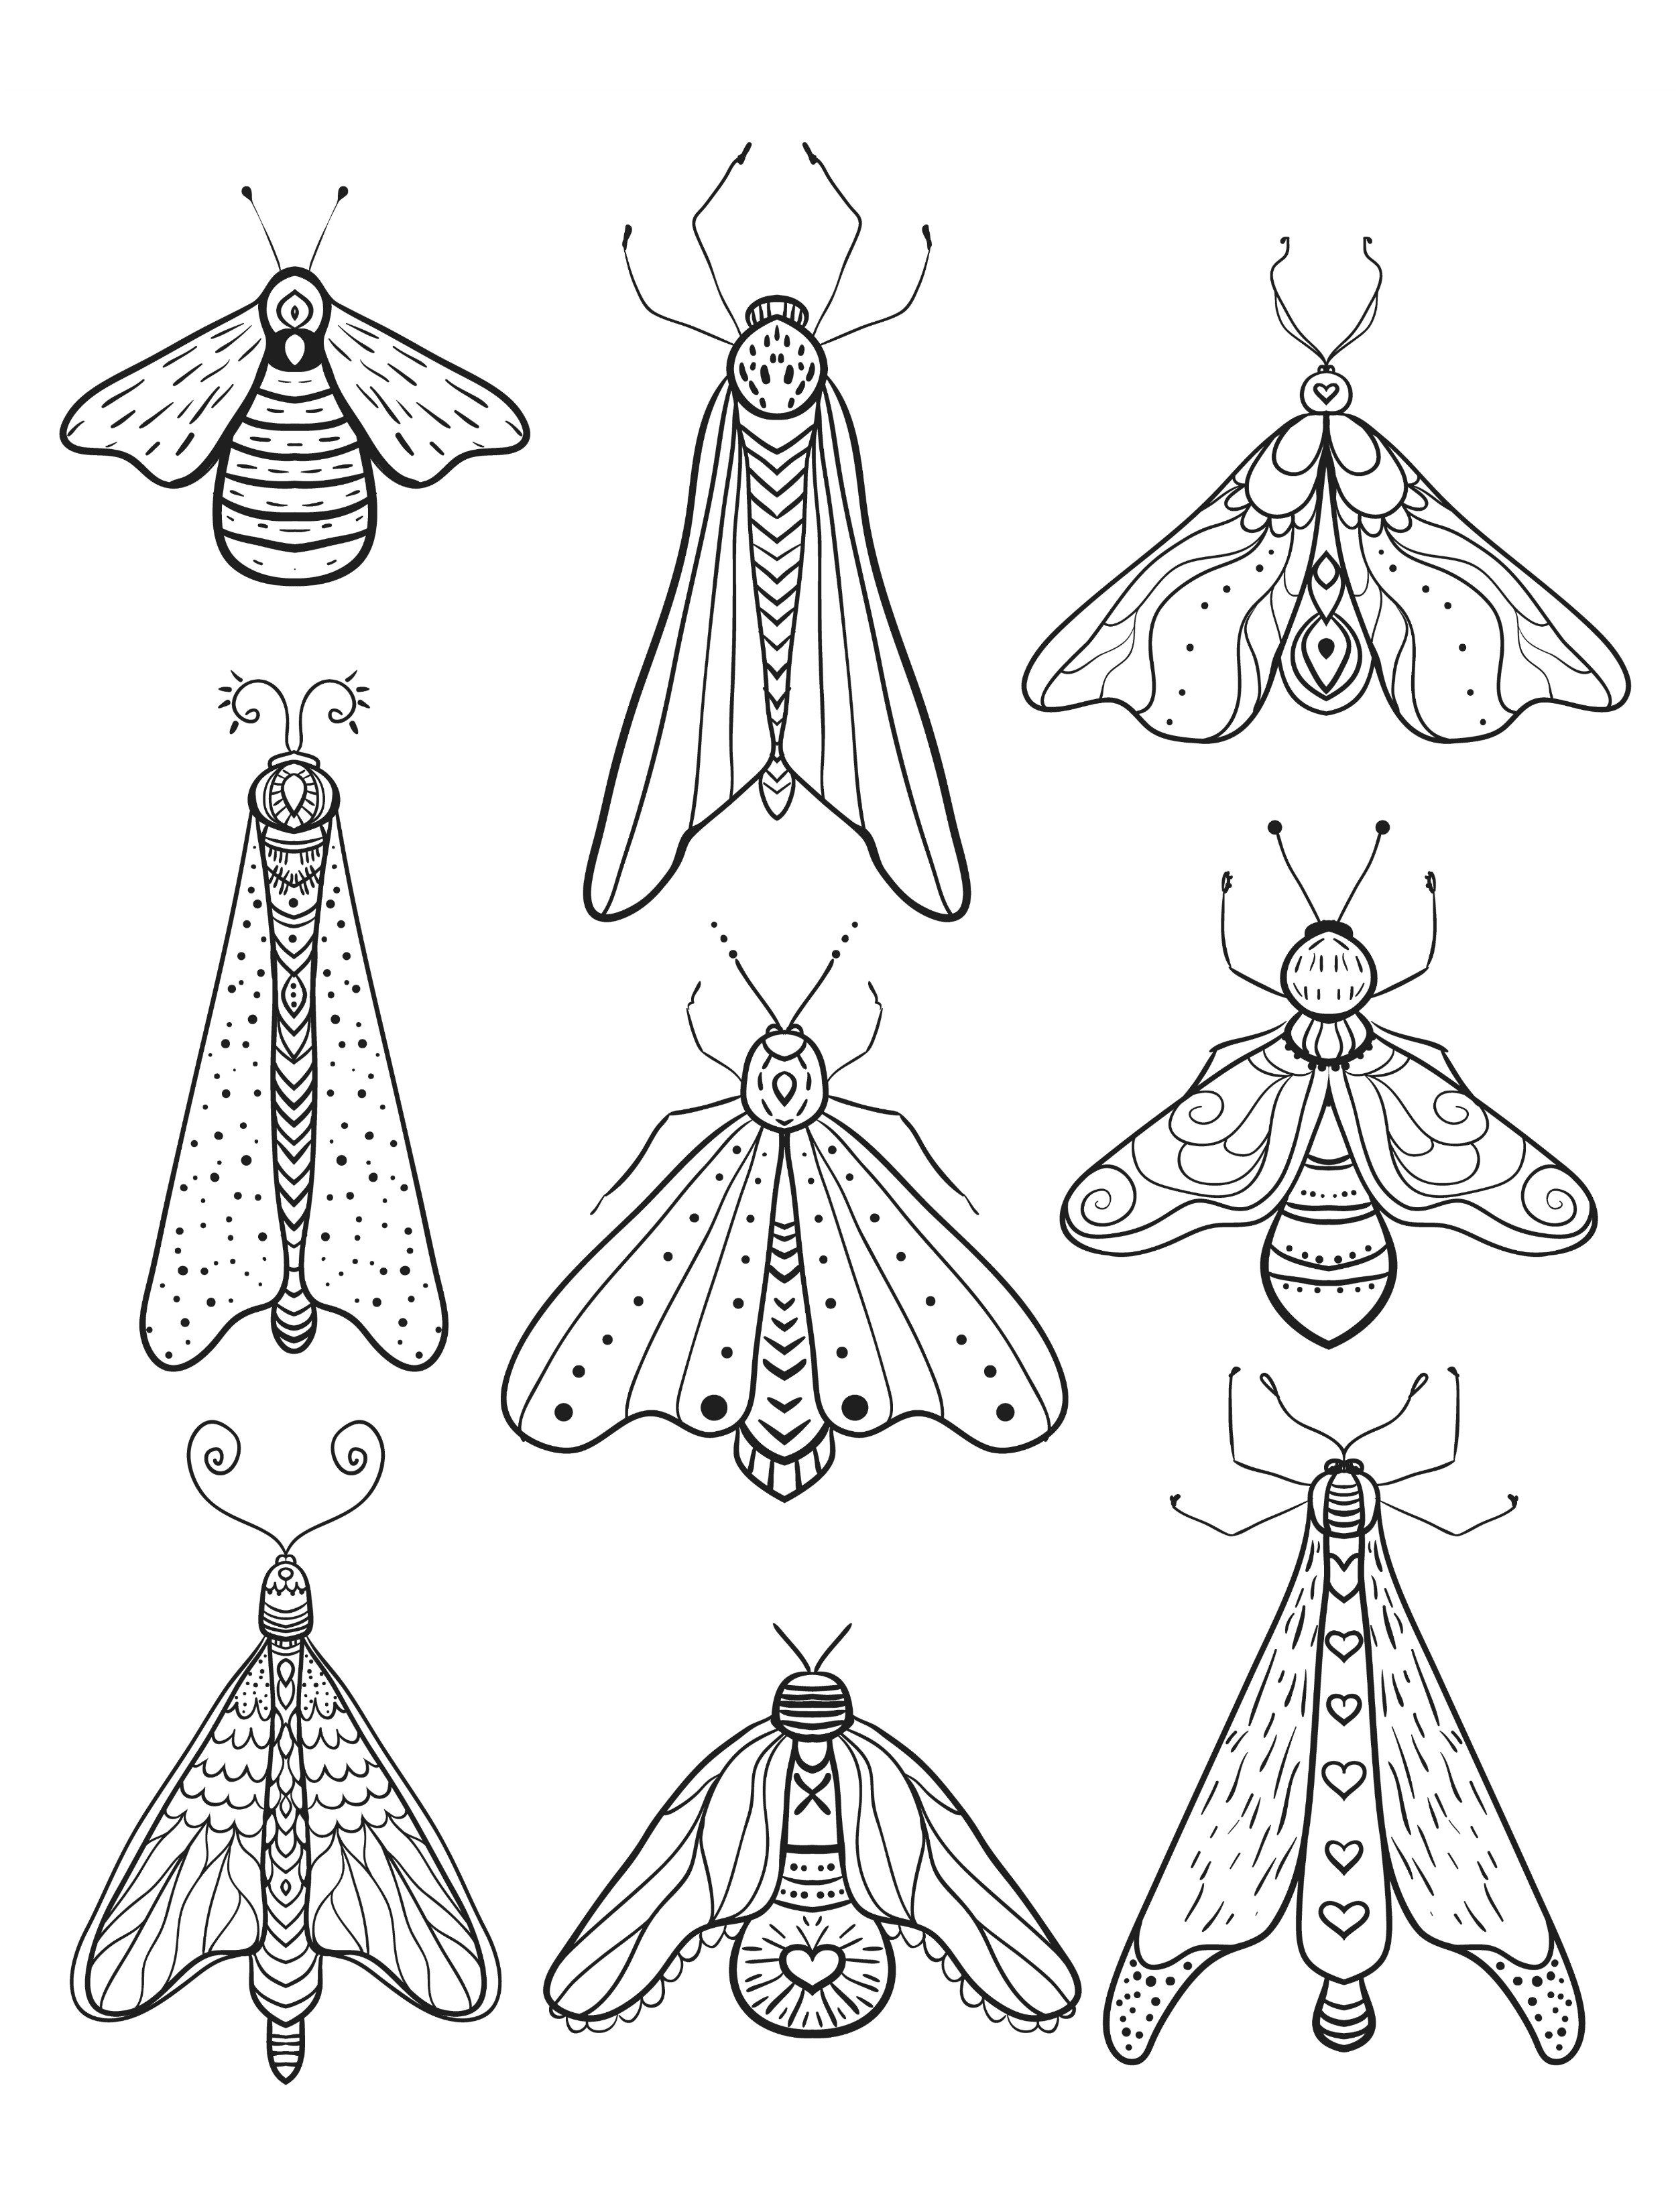 insect free downloadable adult coloring pages pic | Výtvarne námety ...